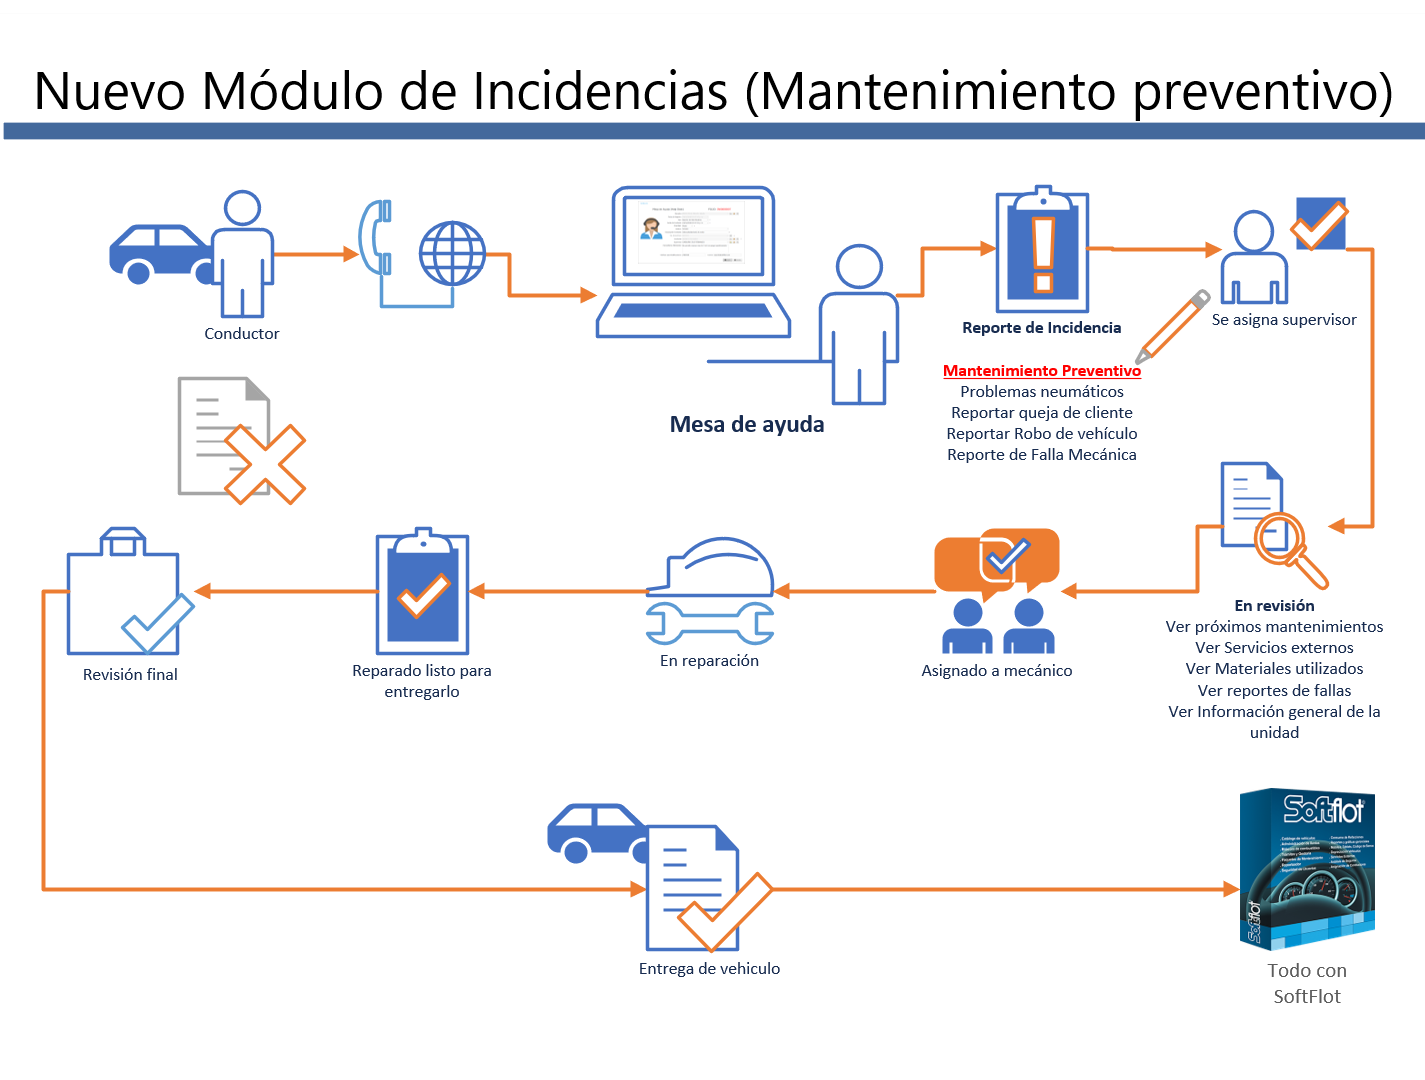 Registro de Incidencia por mantenimiento preventivo